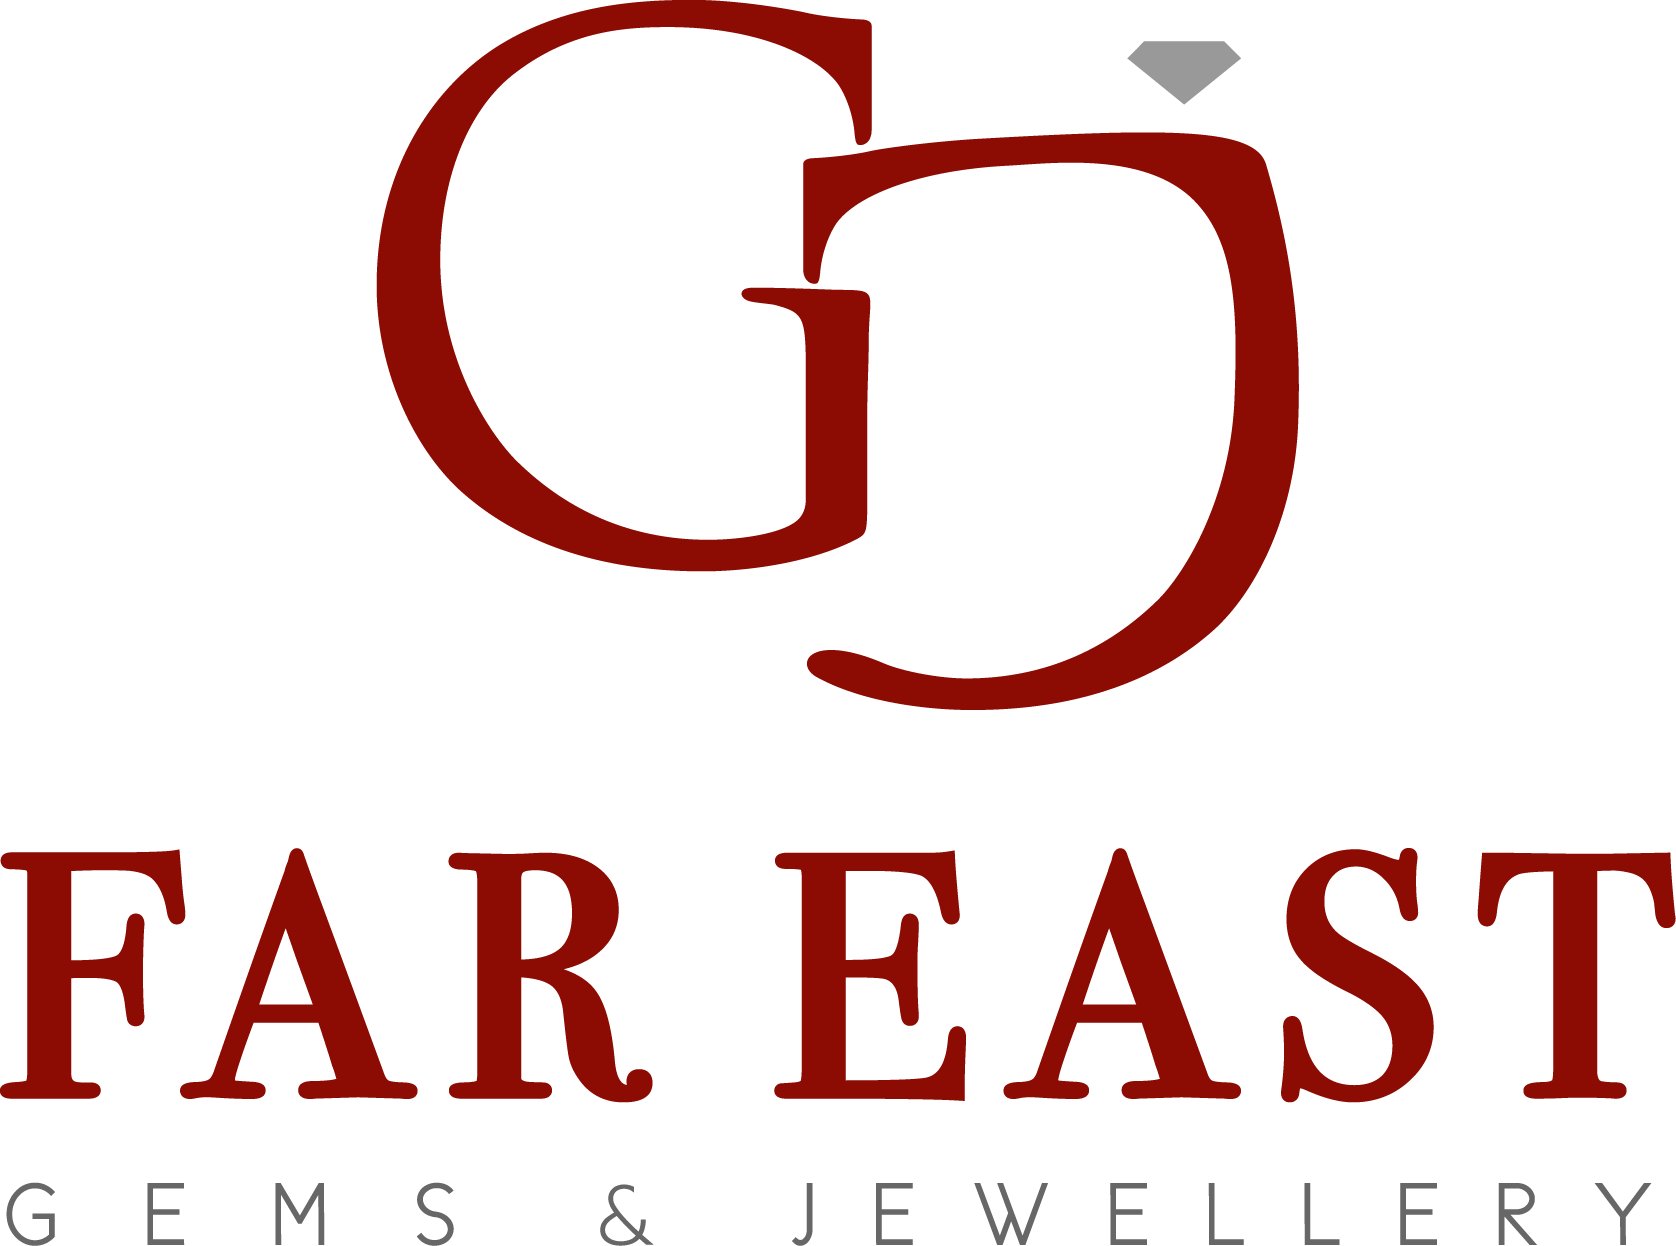 Far East Gems & Jewellery